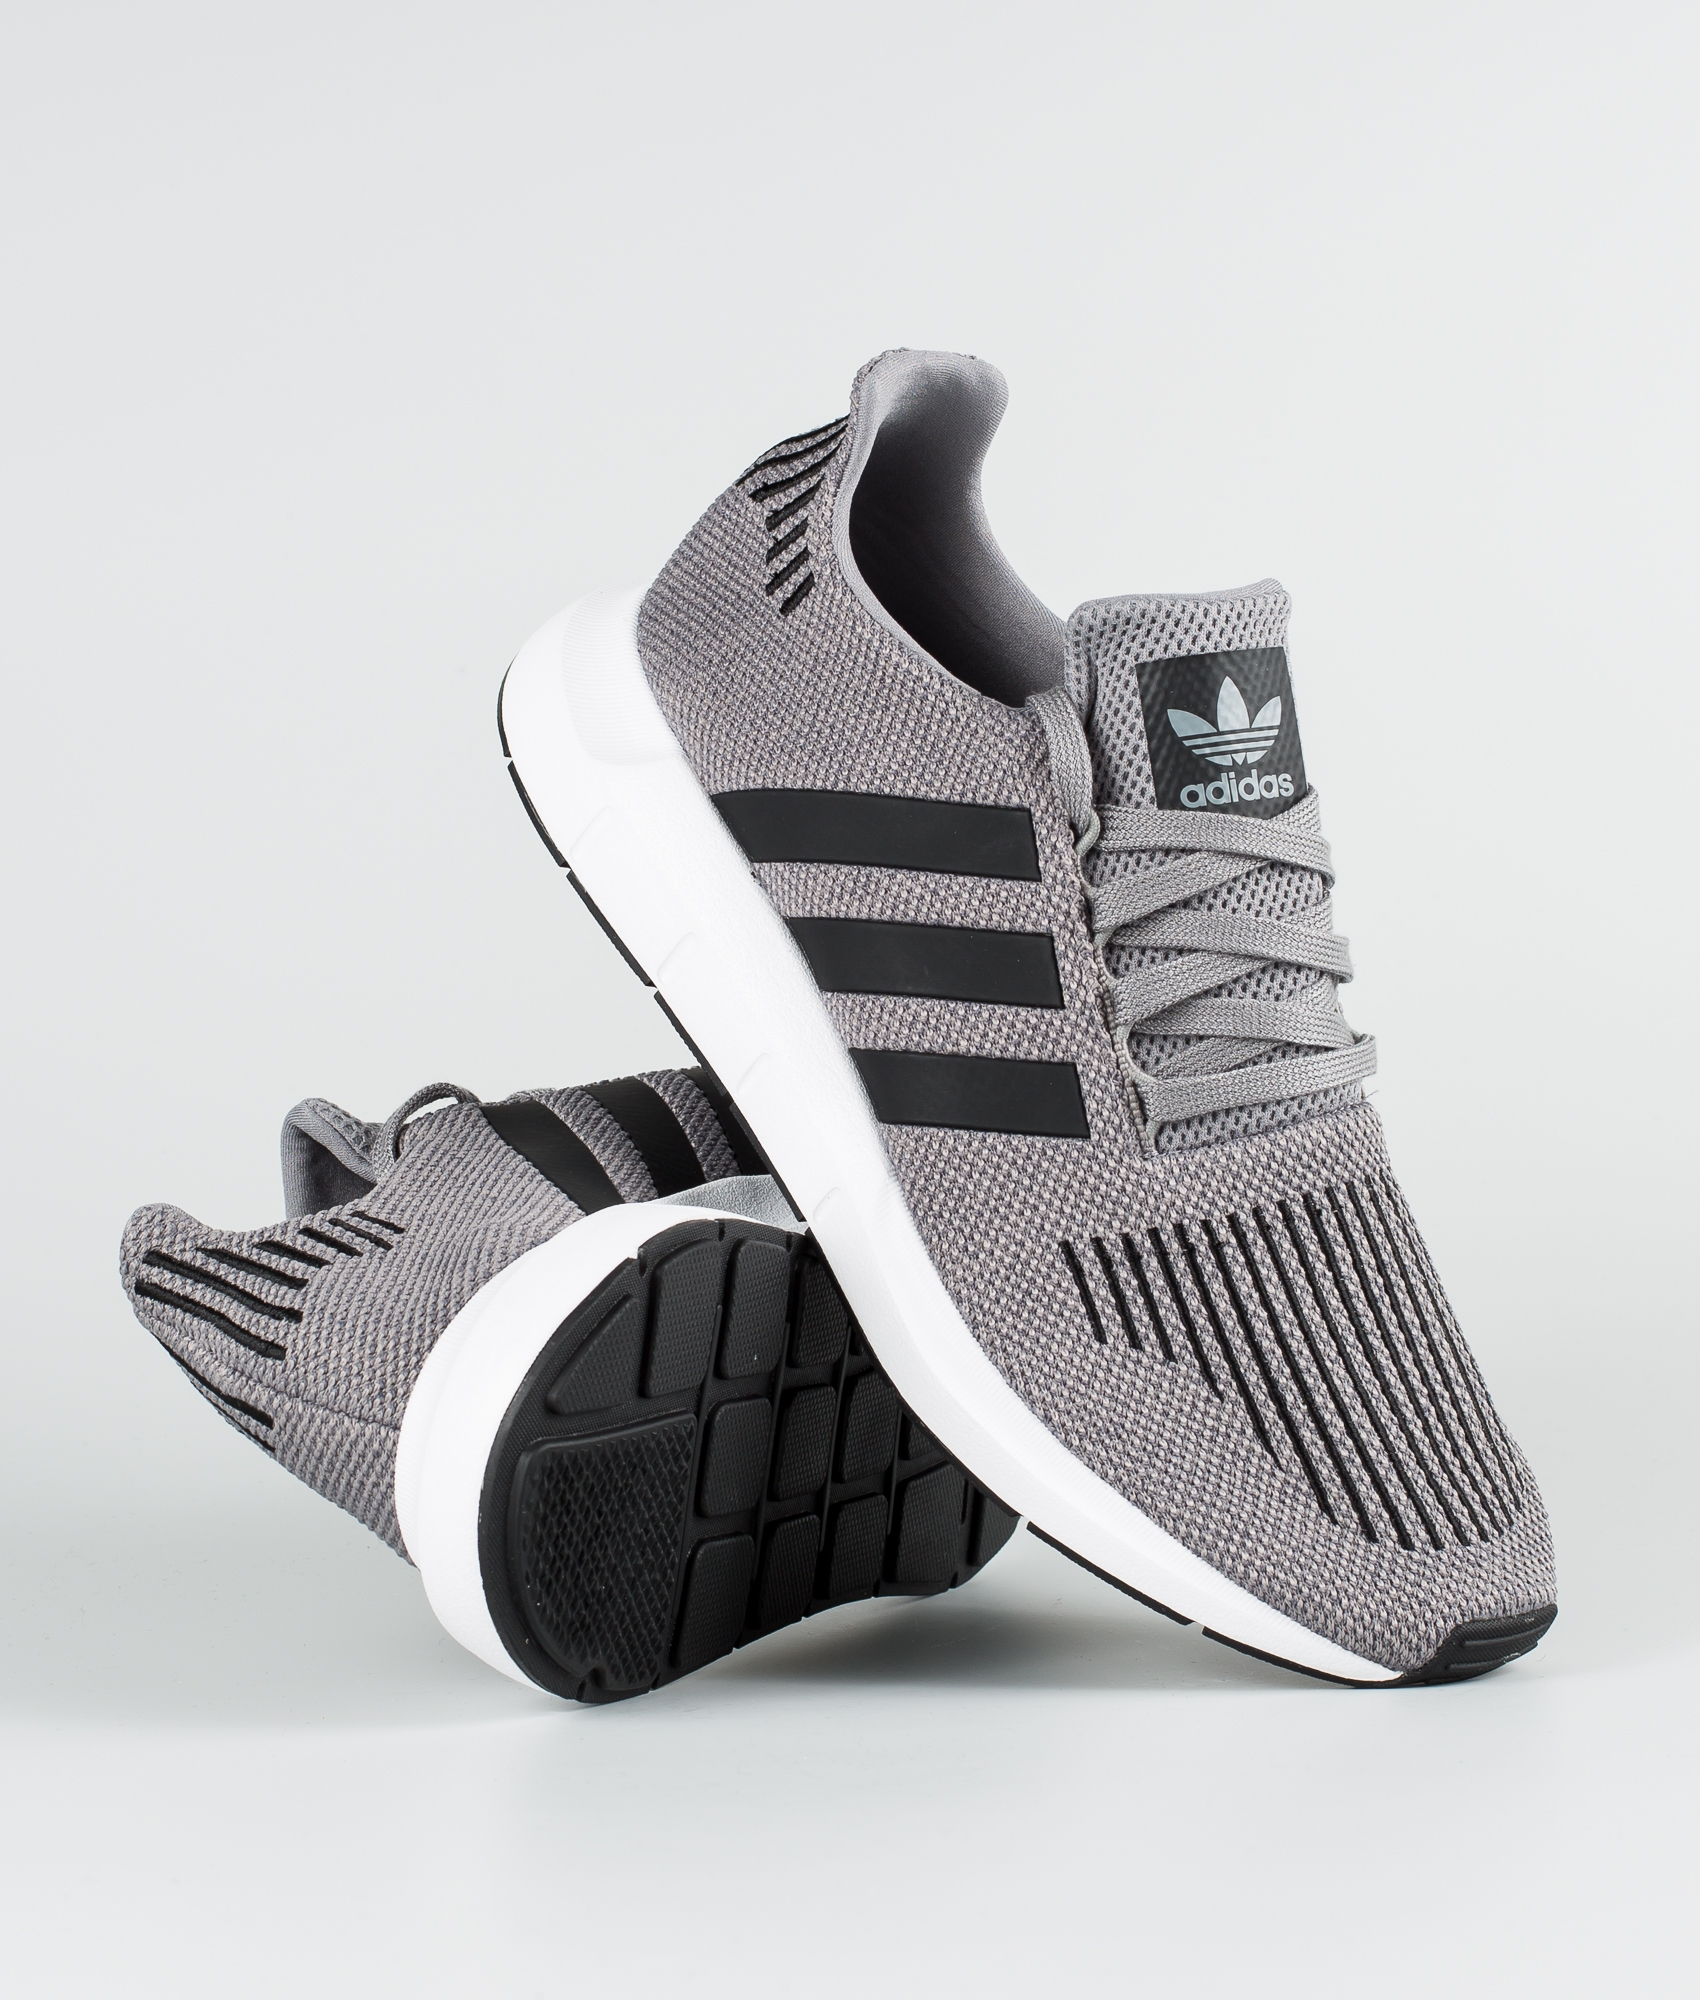 Blackmedium Heather Adidas Originals Schuhe Heathercore Run Swift Grey PuiTwXOkZ